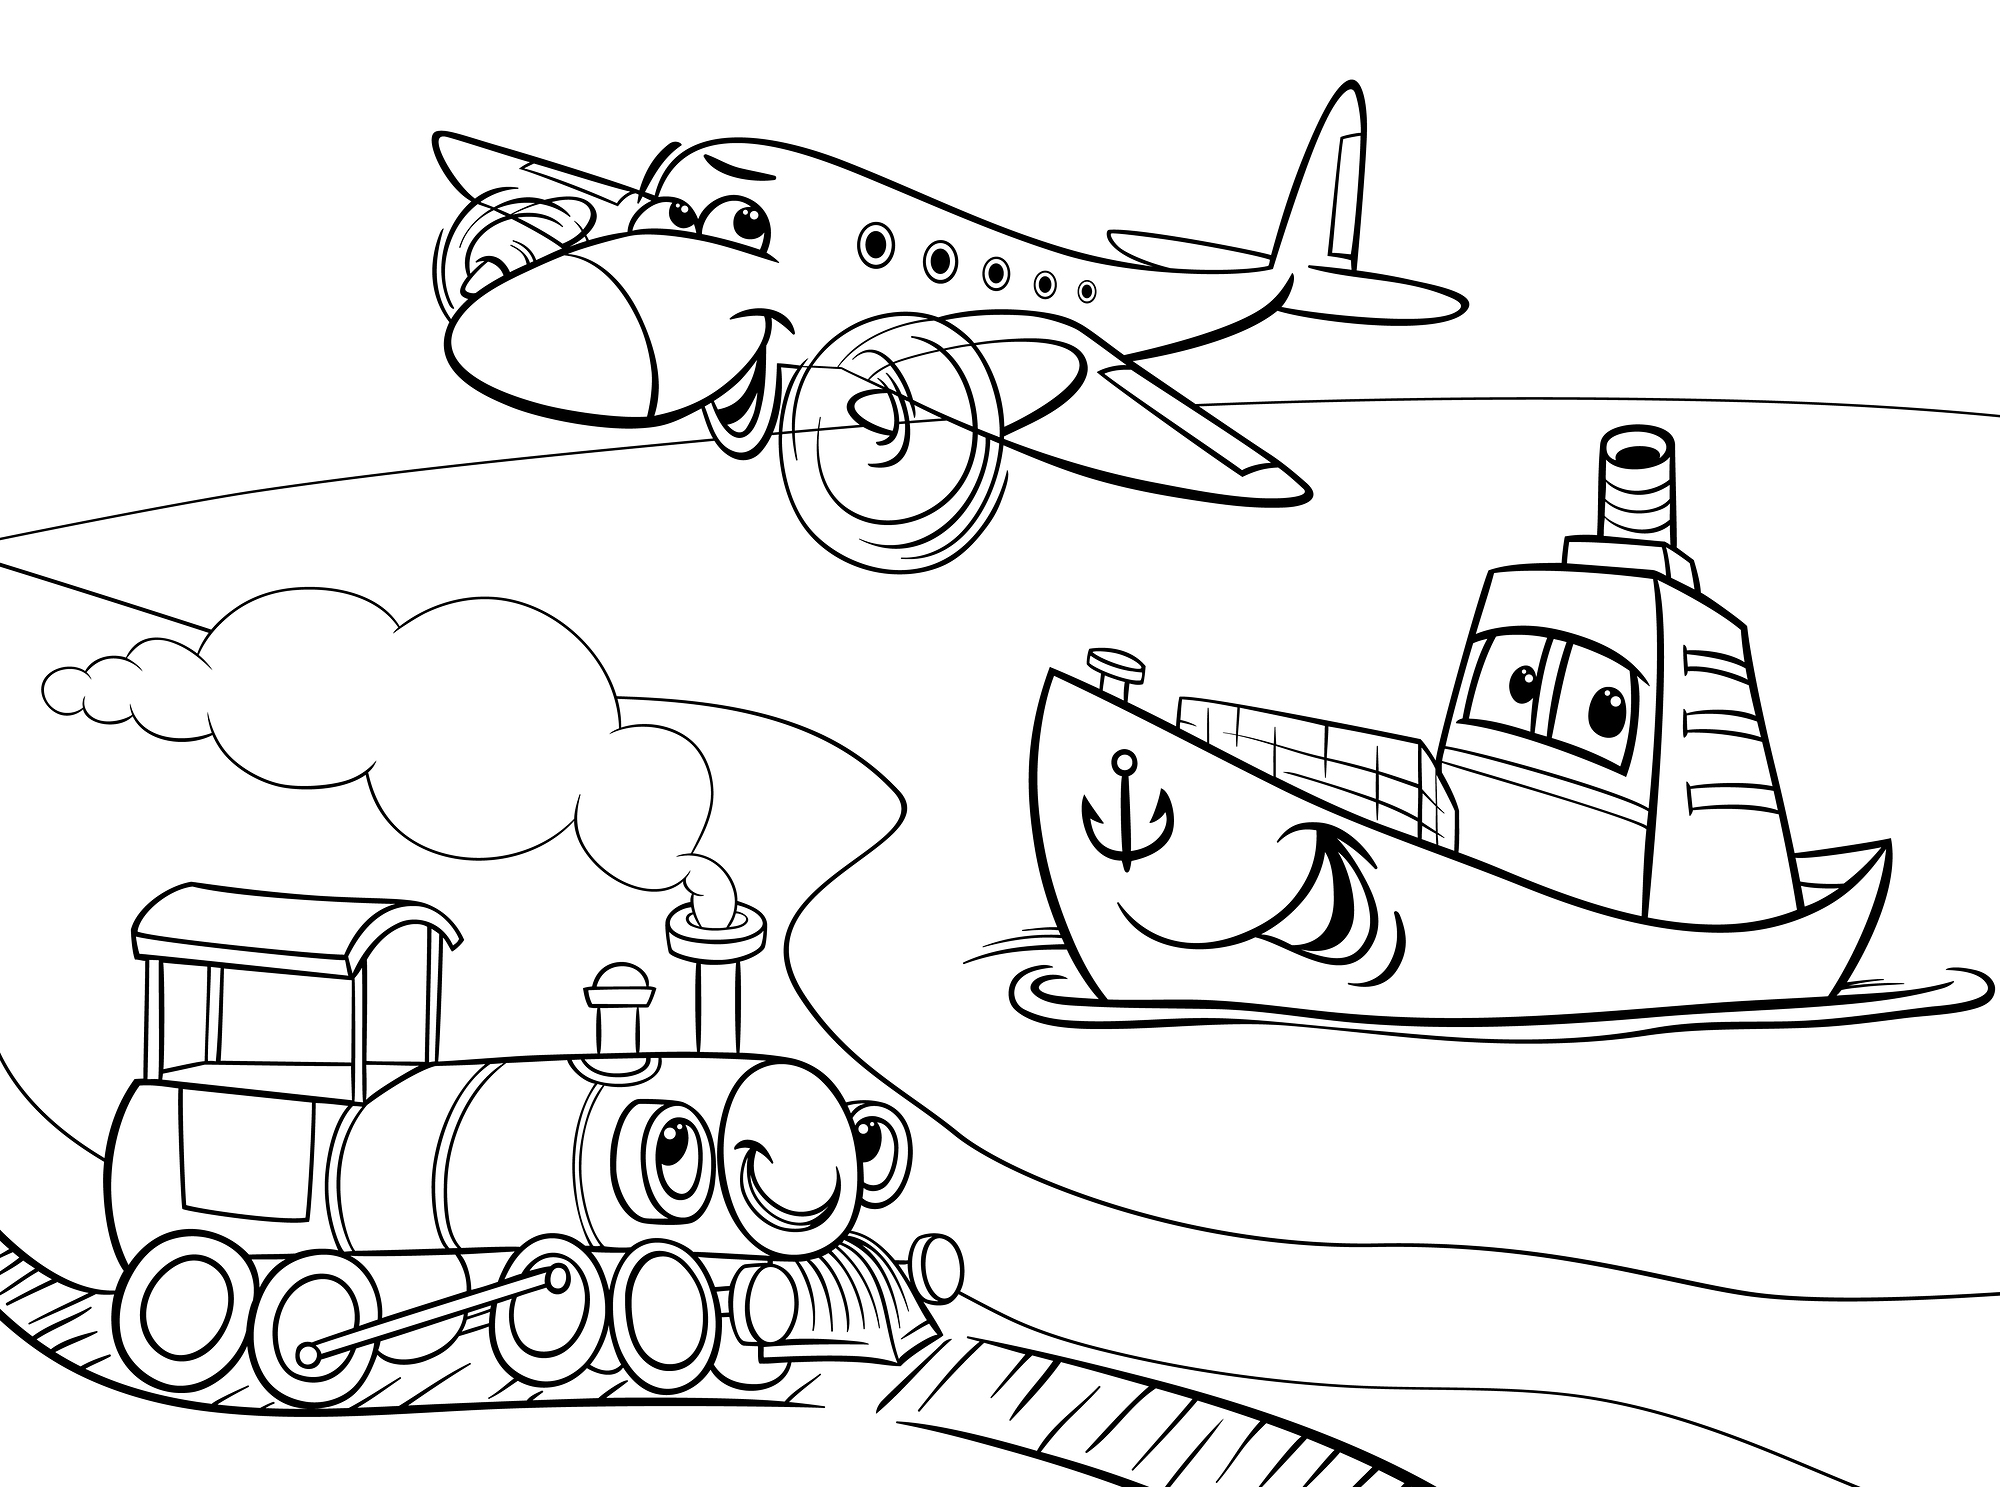 air transport coloring pages | Water transport coloring pages download and print for free